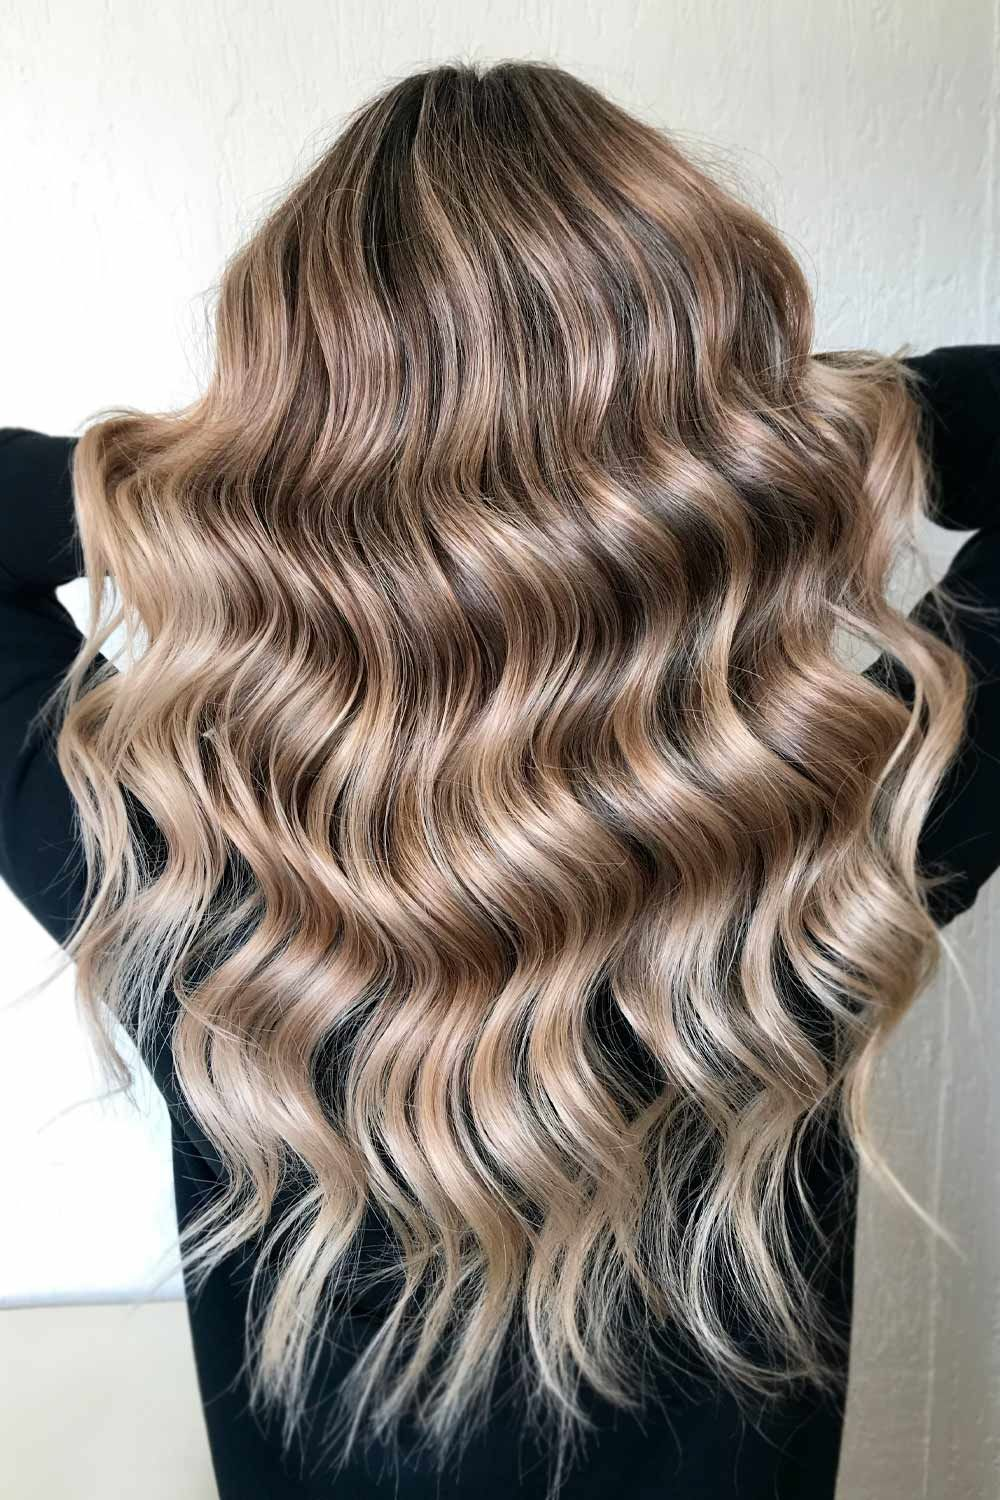 15+🤩 Sassy Looks With Ash Brown Hair   LoveHairStyles.com